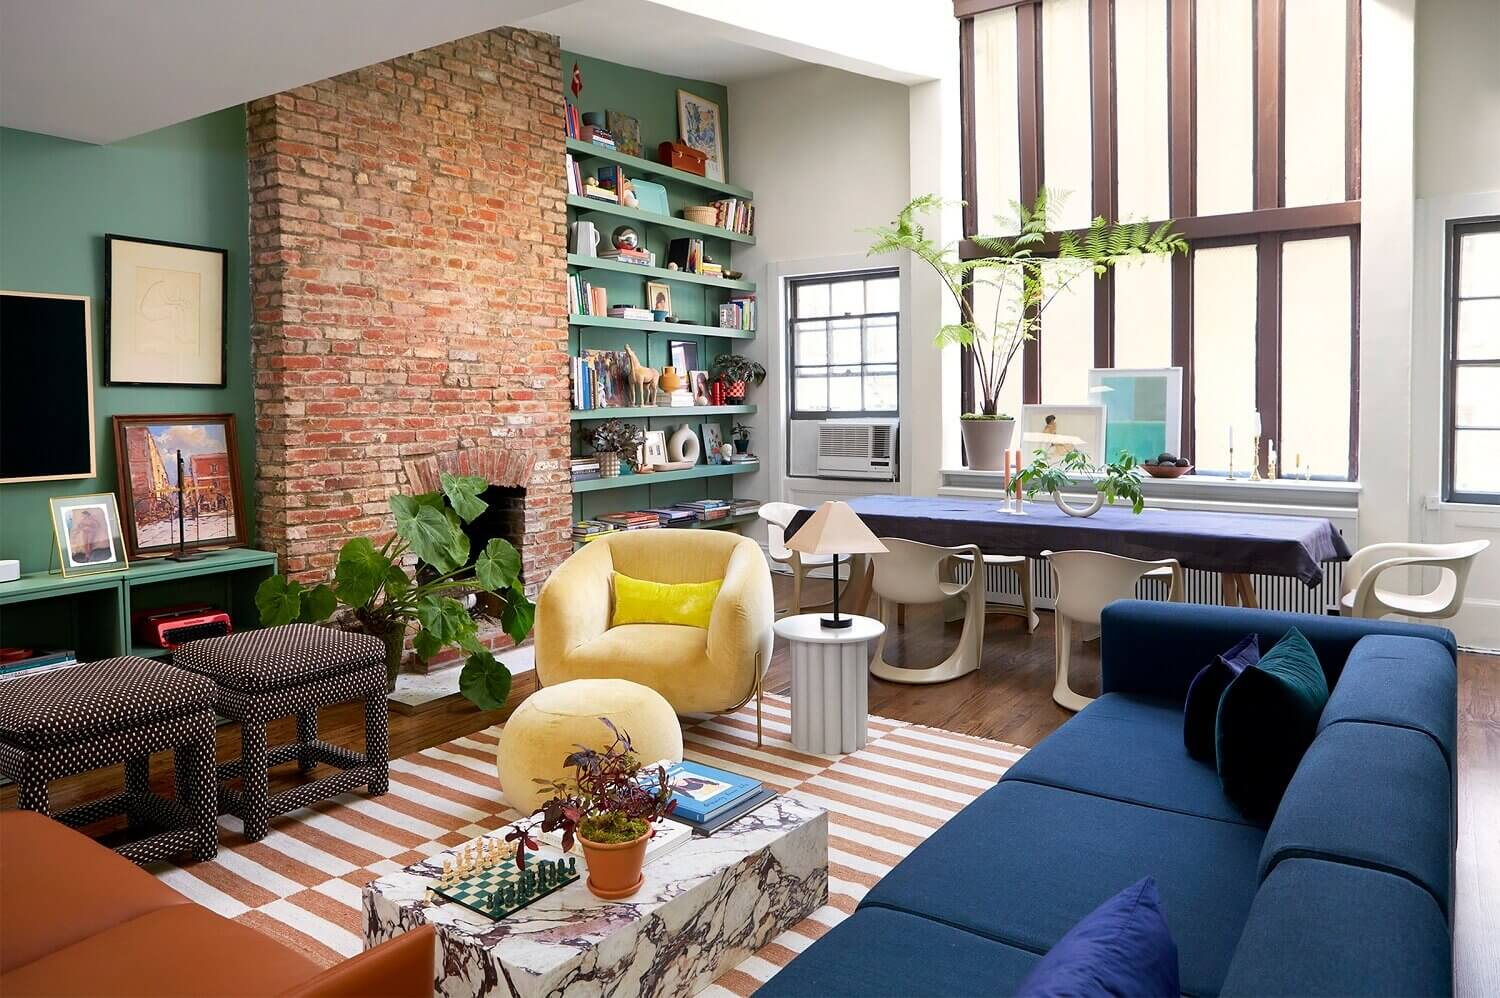 A Creative and Colorful Home in New York City